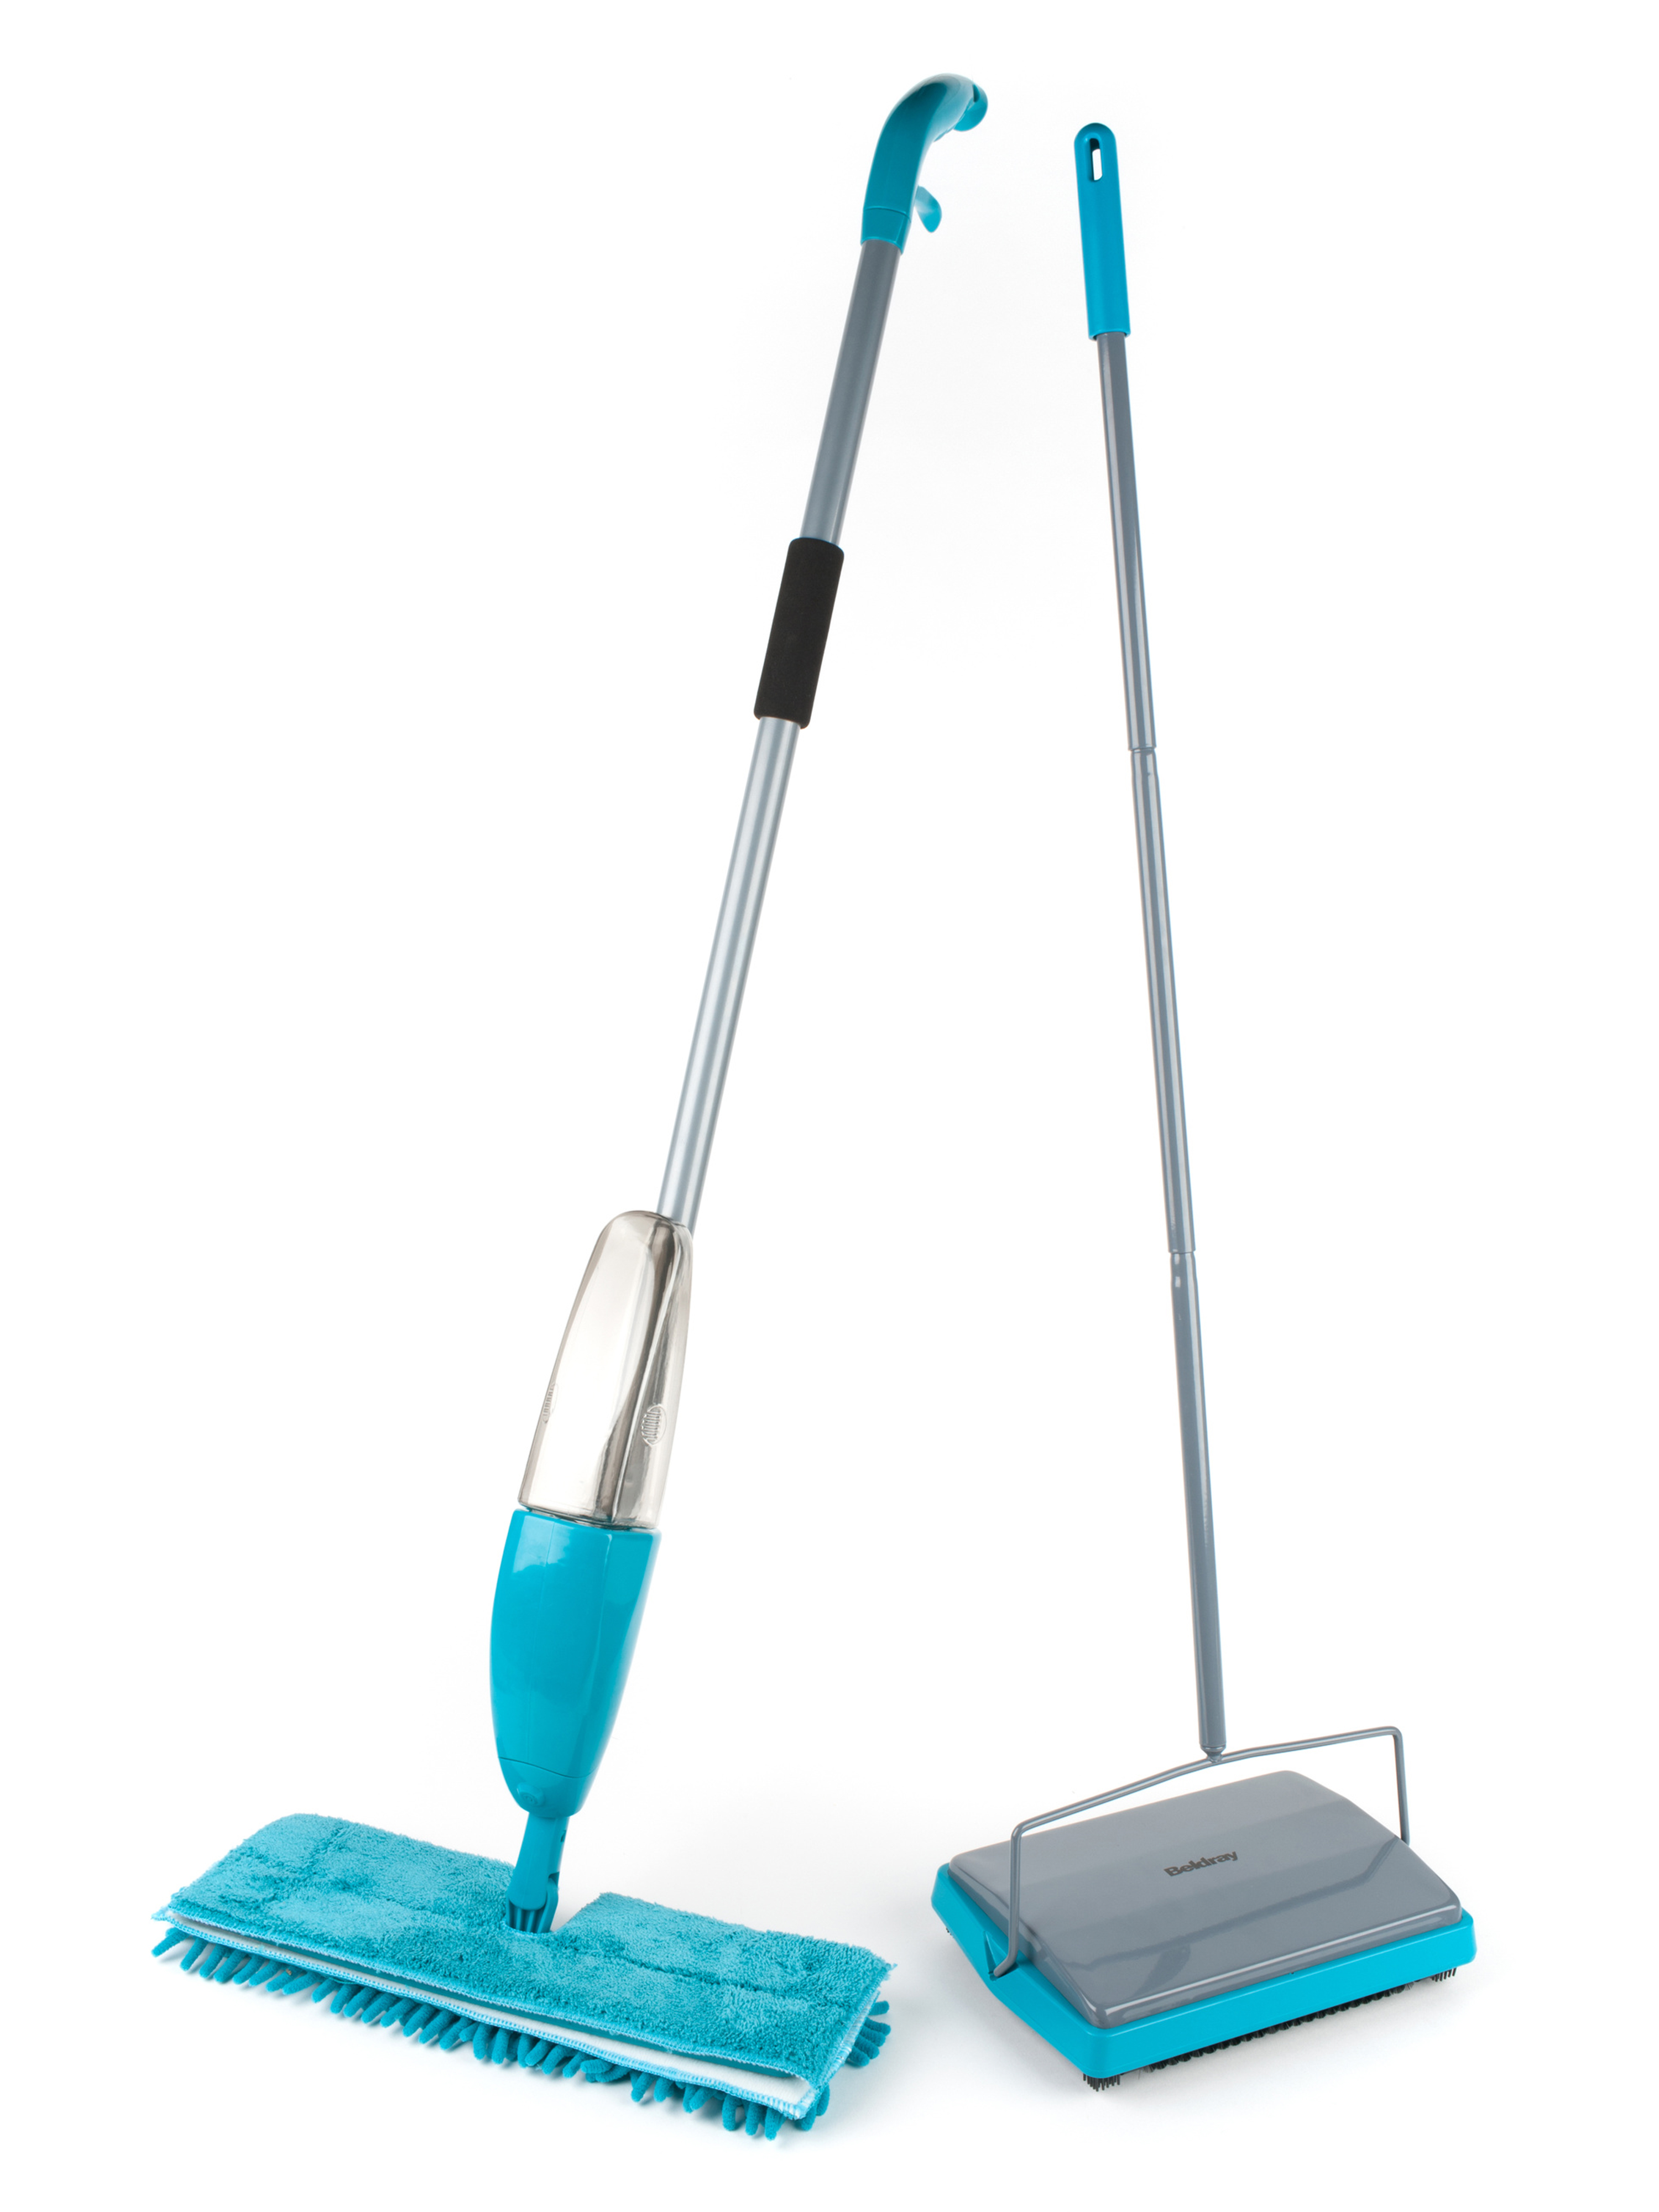 Beldray Hard Floor Amp Carpet Cleaning Set With Double Sided